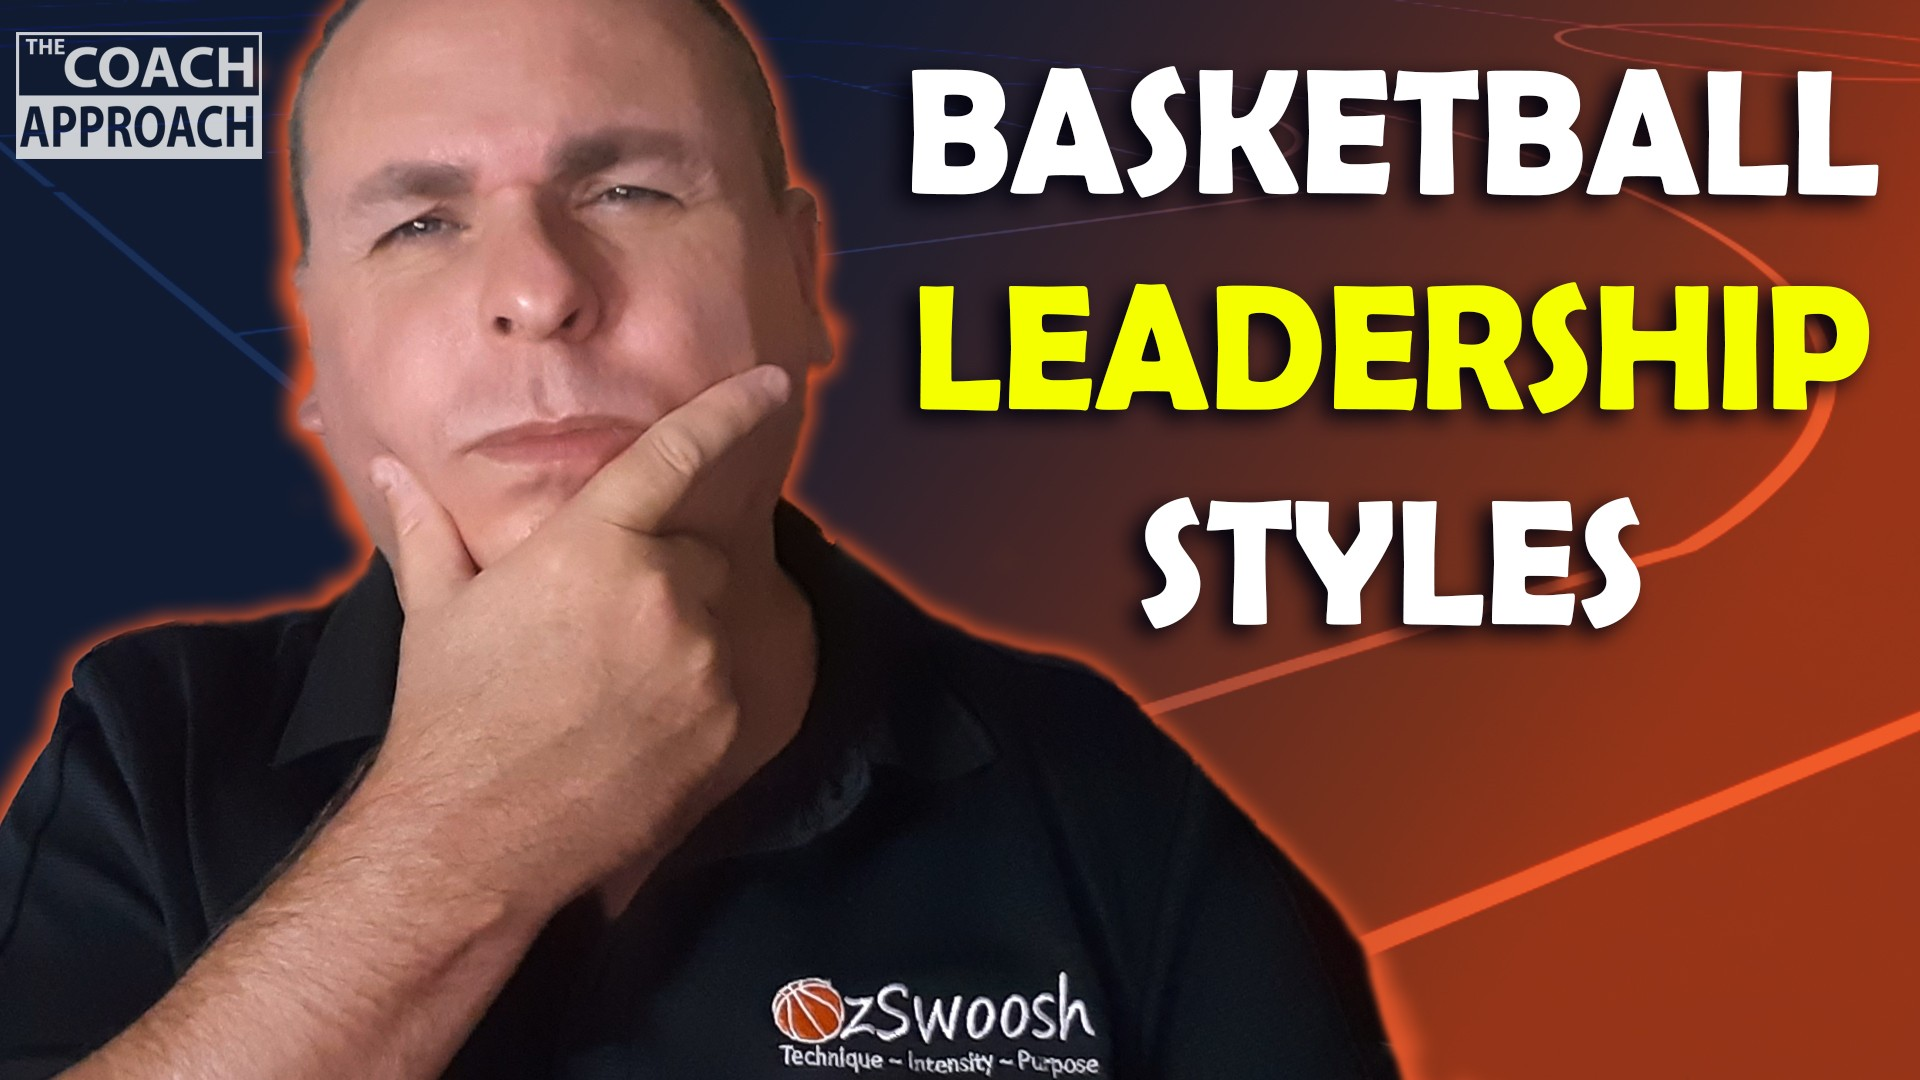 Basketball Leadership Styles In Coaching (The Coach Approach)